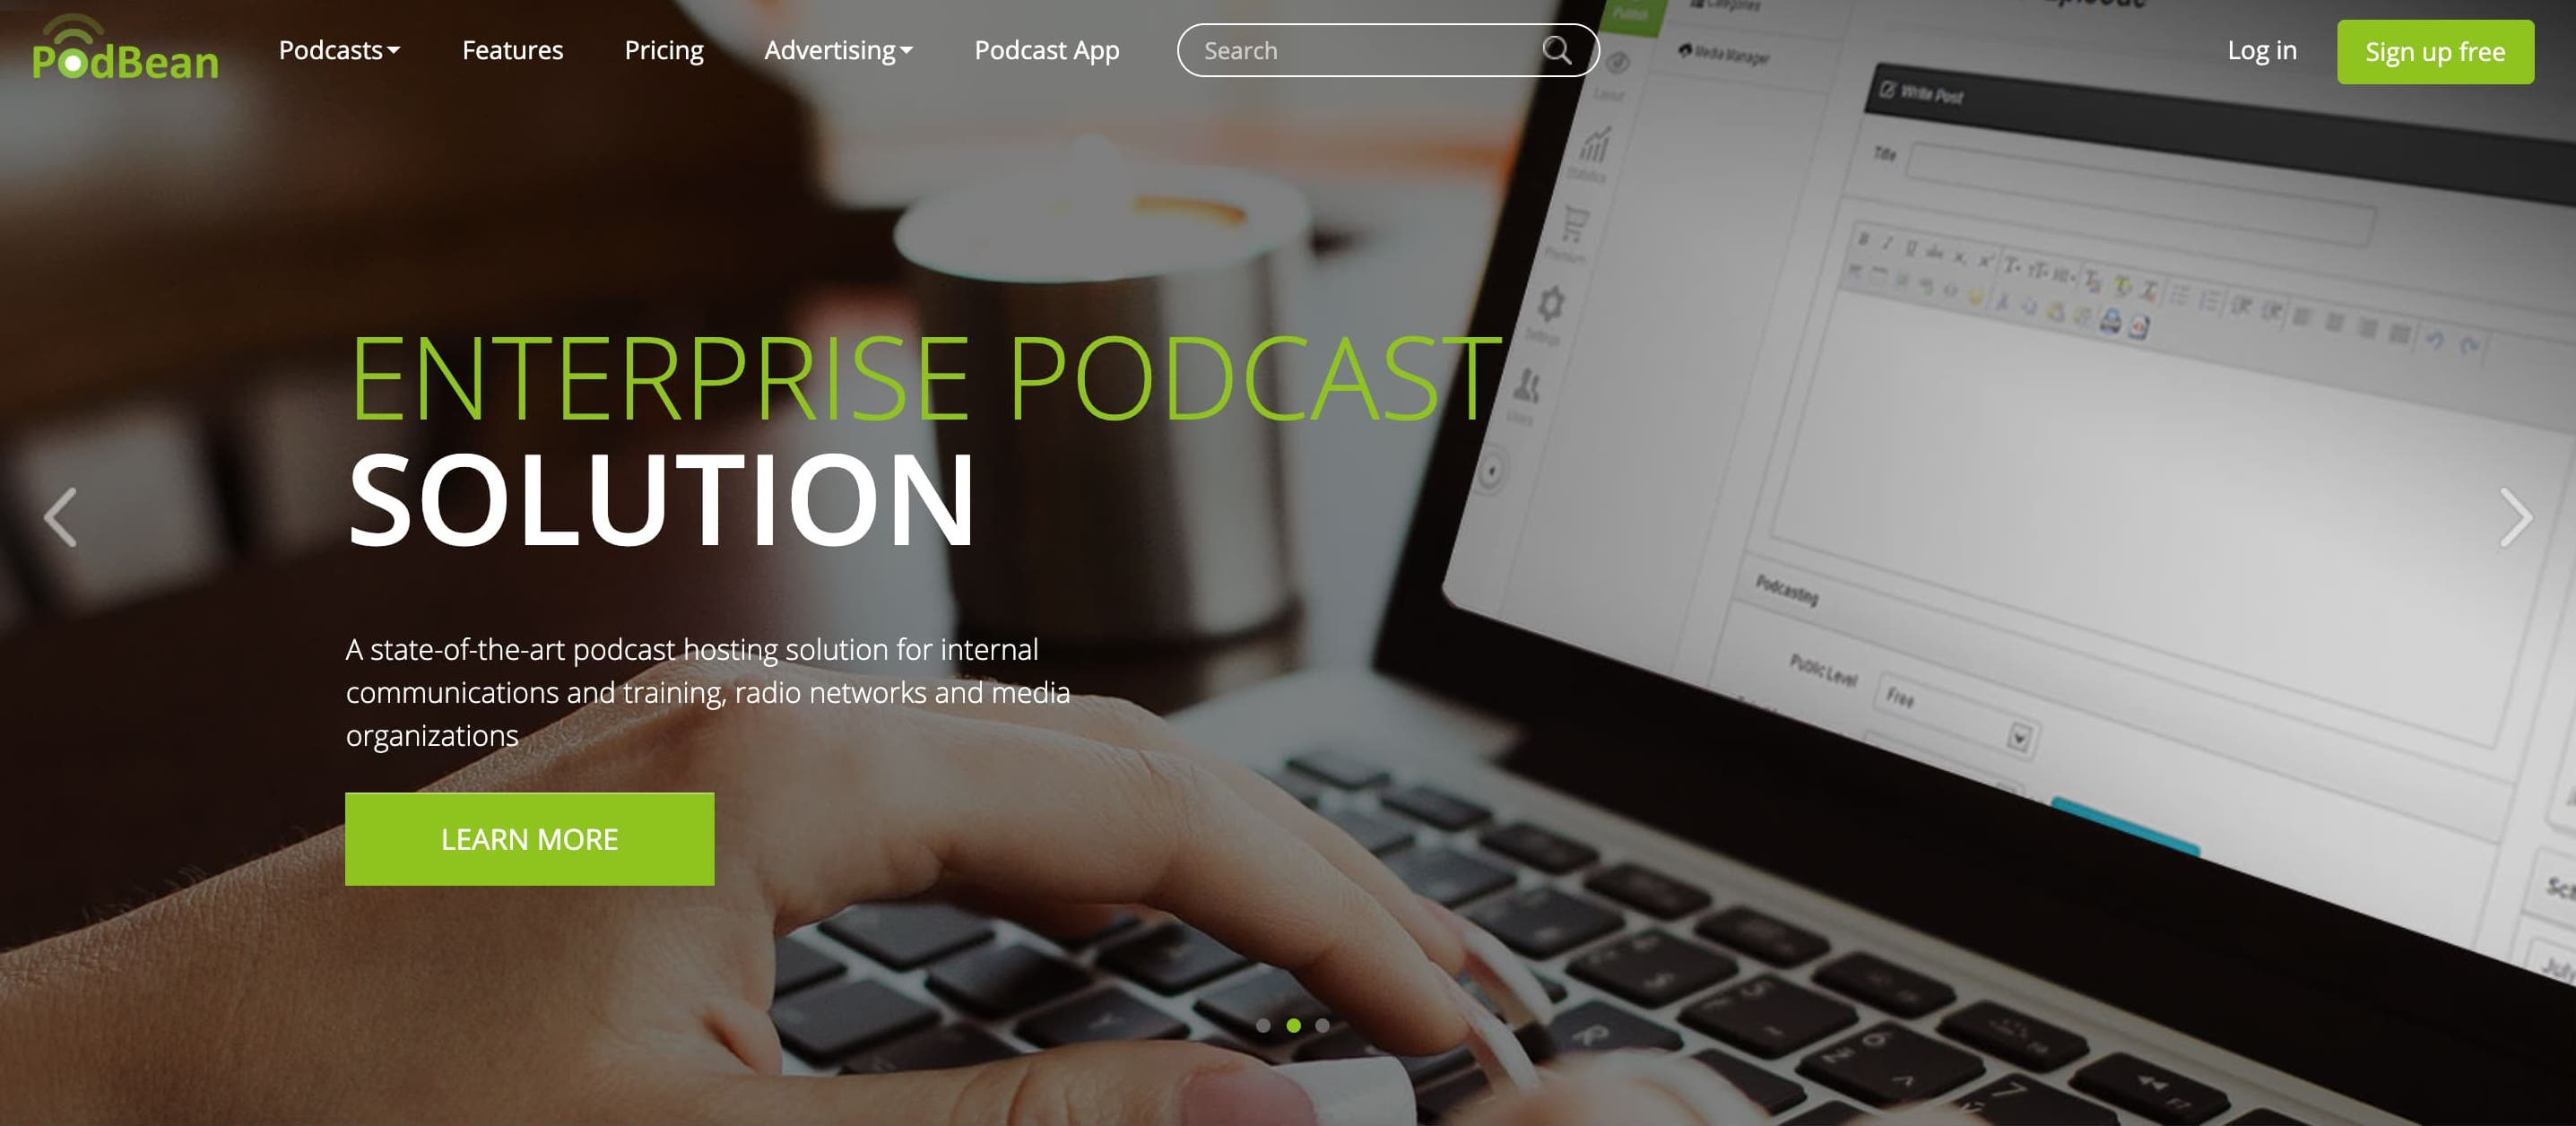 Podbean podcast software homepage